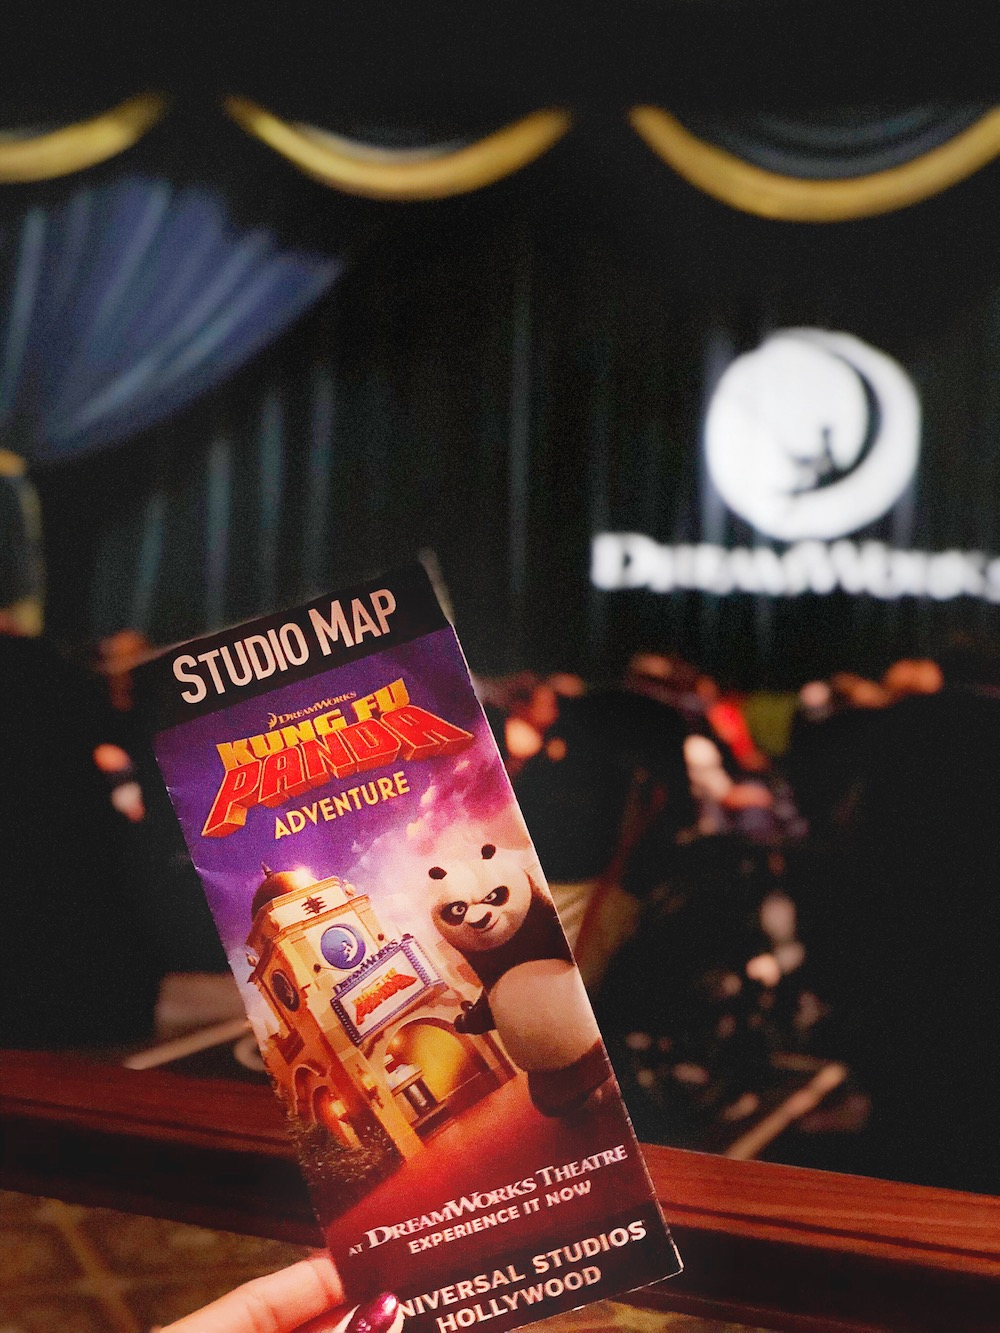 map of universal studios Hollywood at dreamwork theatre - livingmividaloca.com